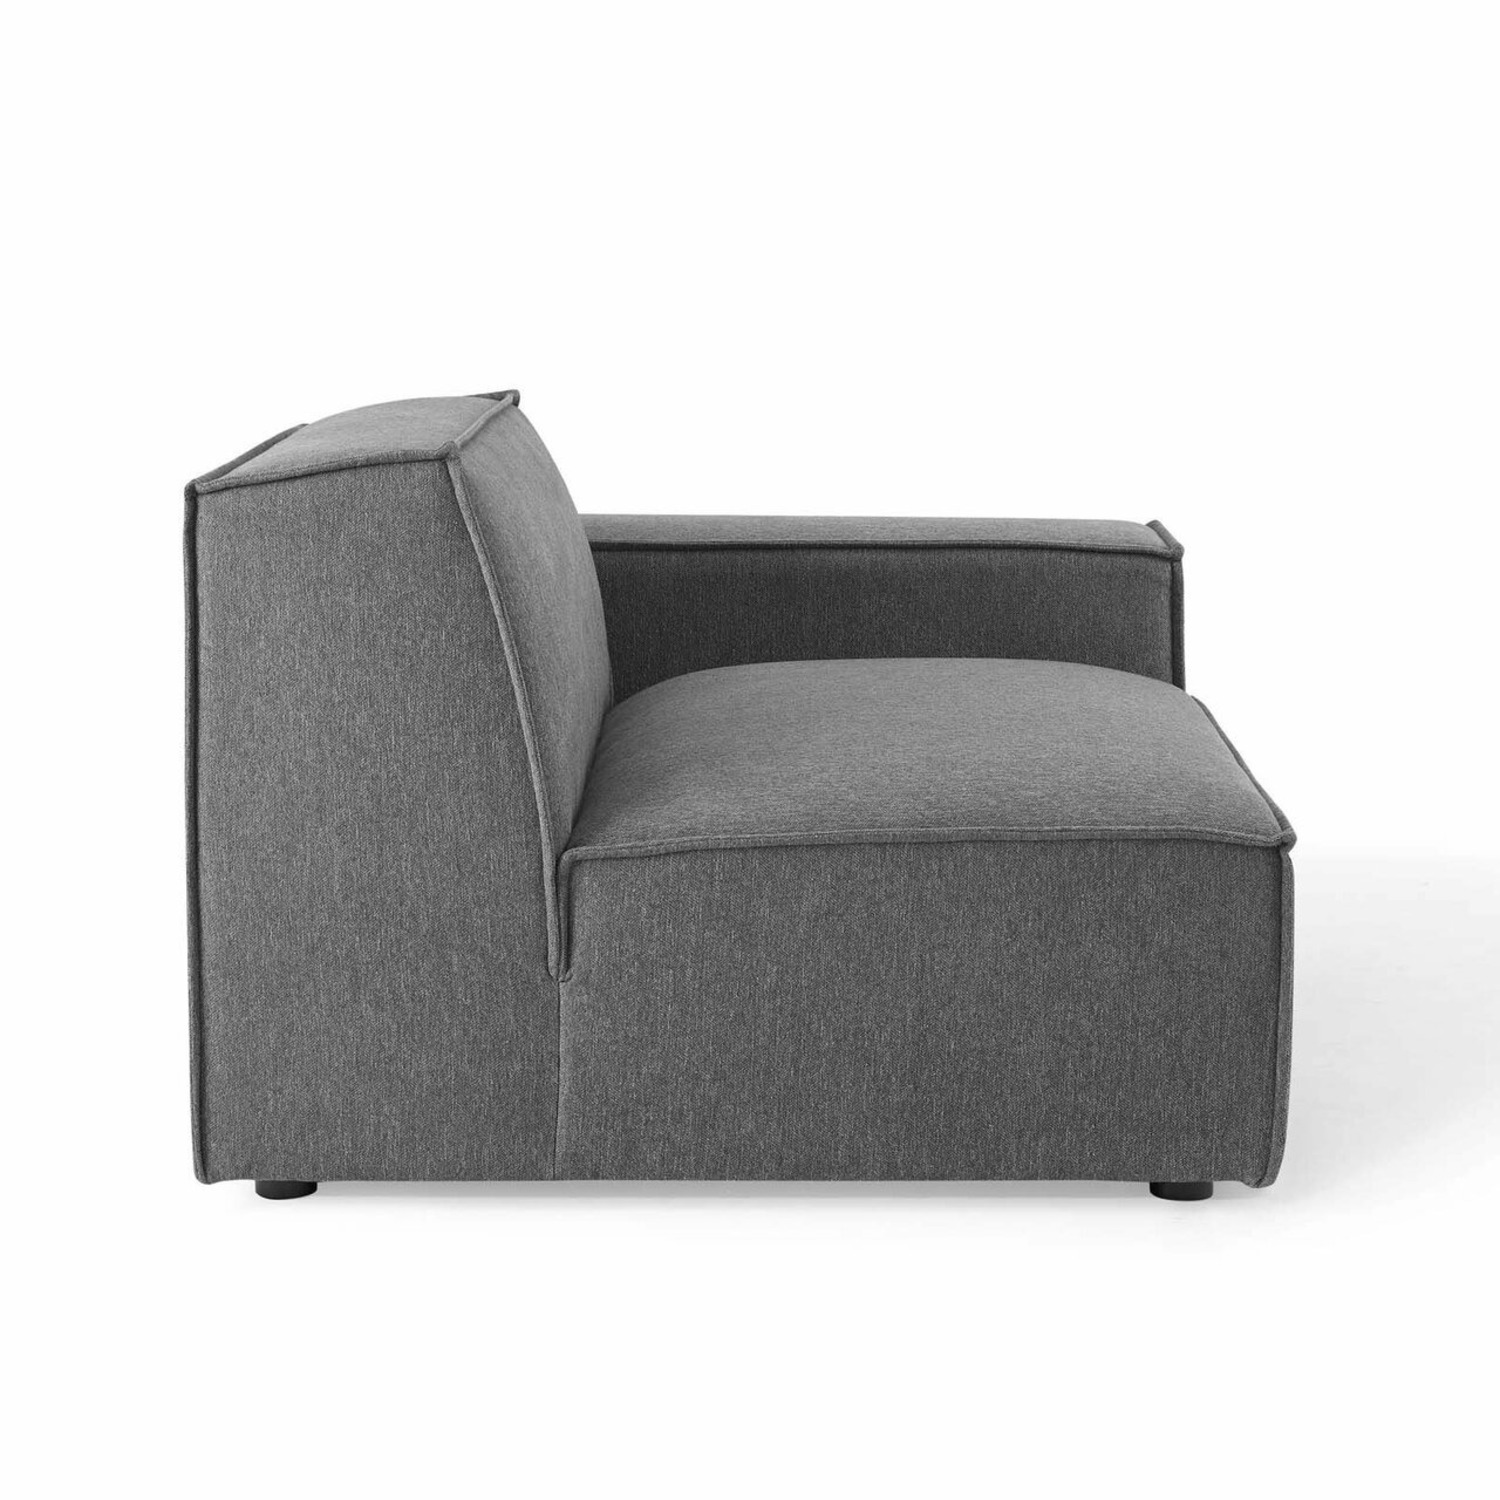 4-Piece Sectional Sofa In Charcoal Fabric Finish - image-3